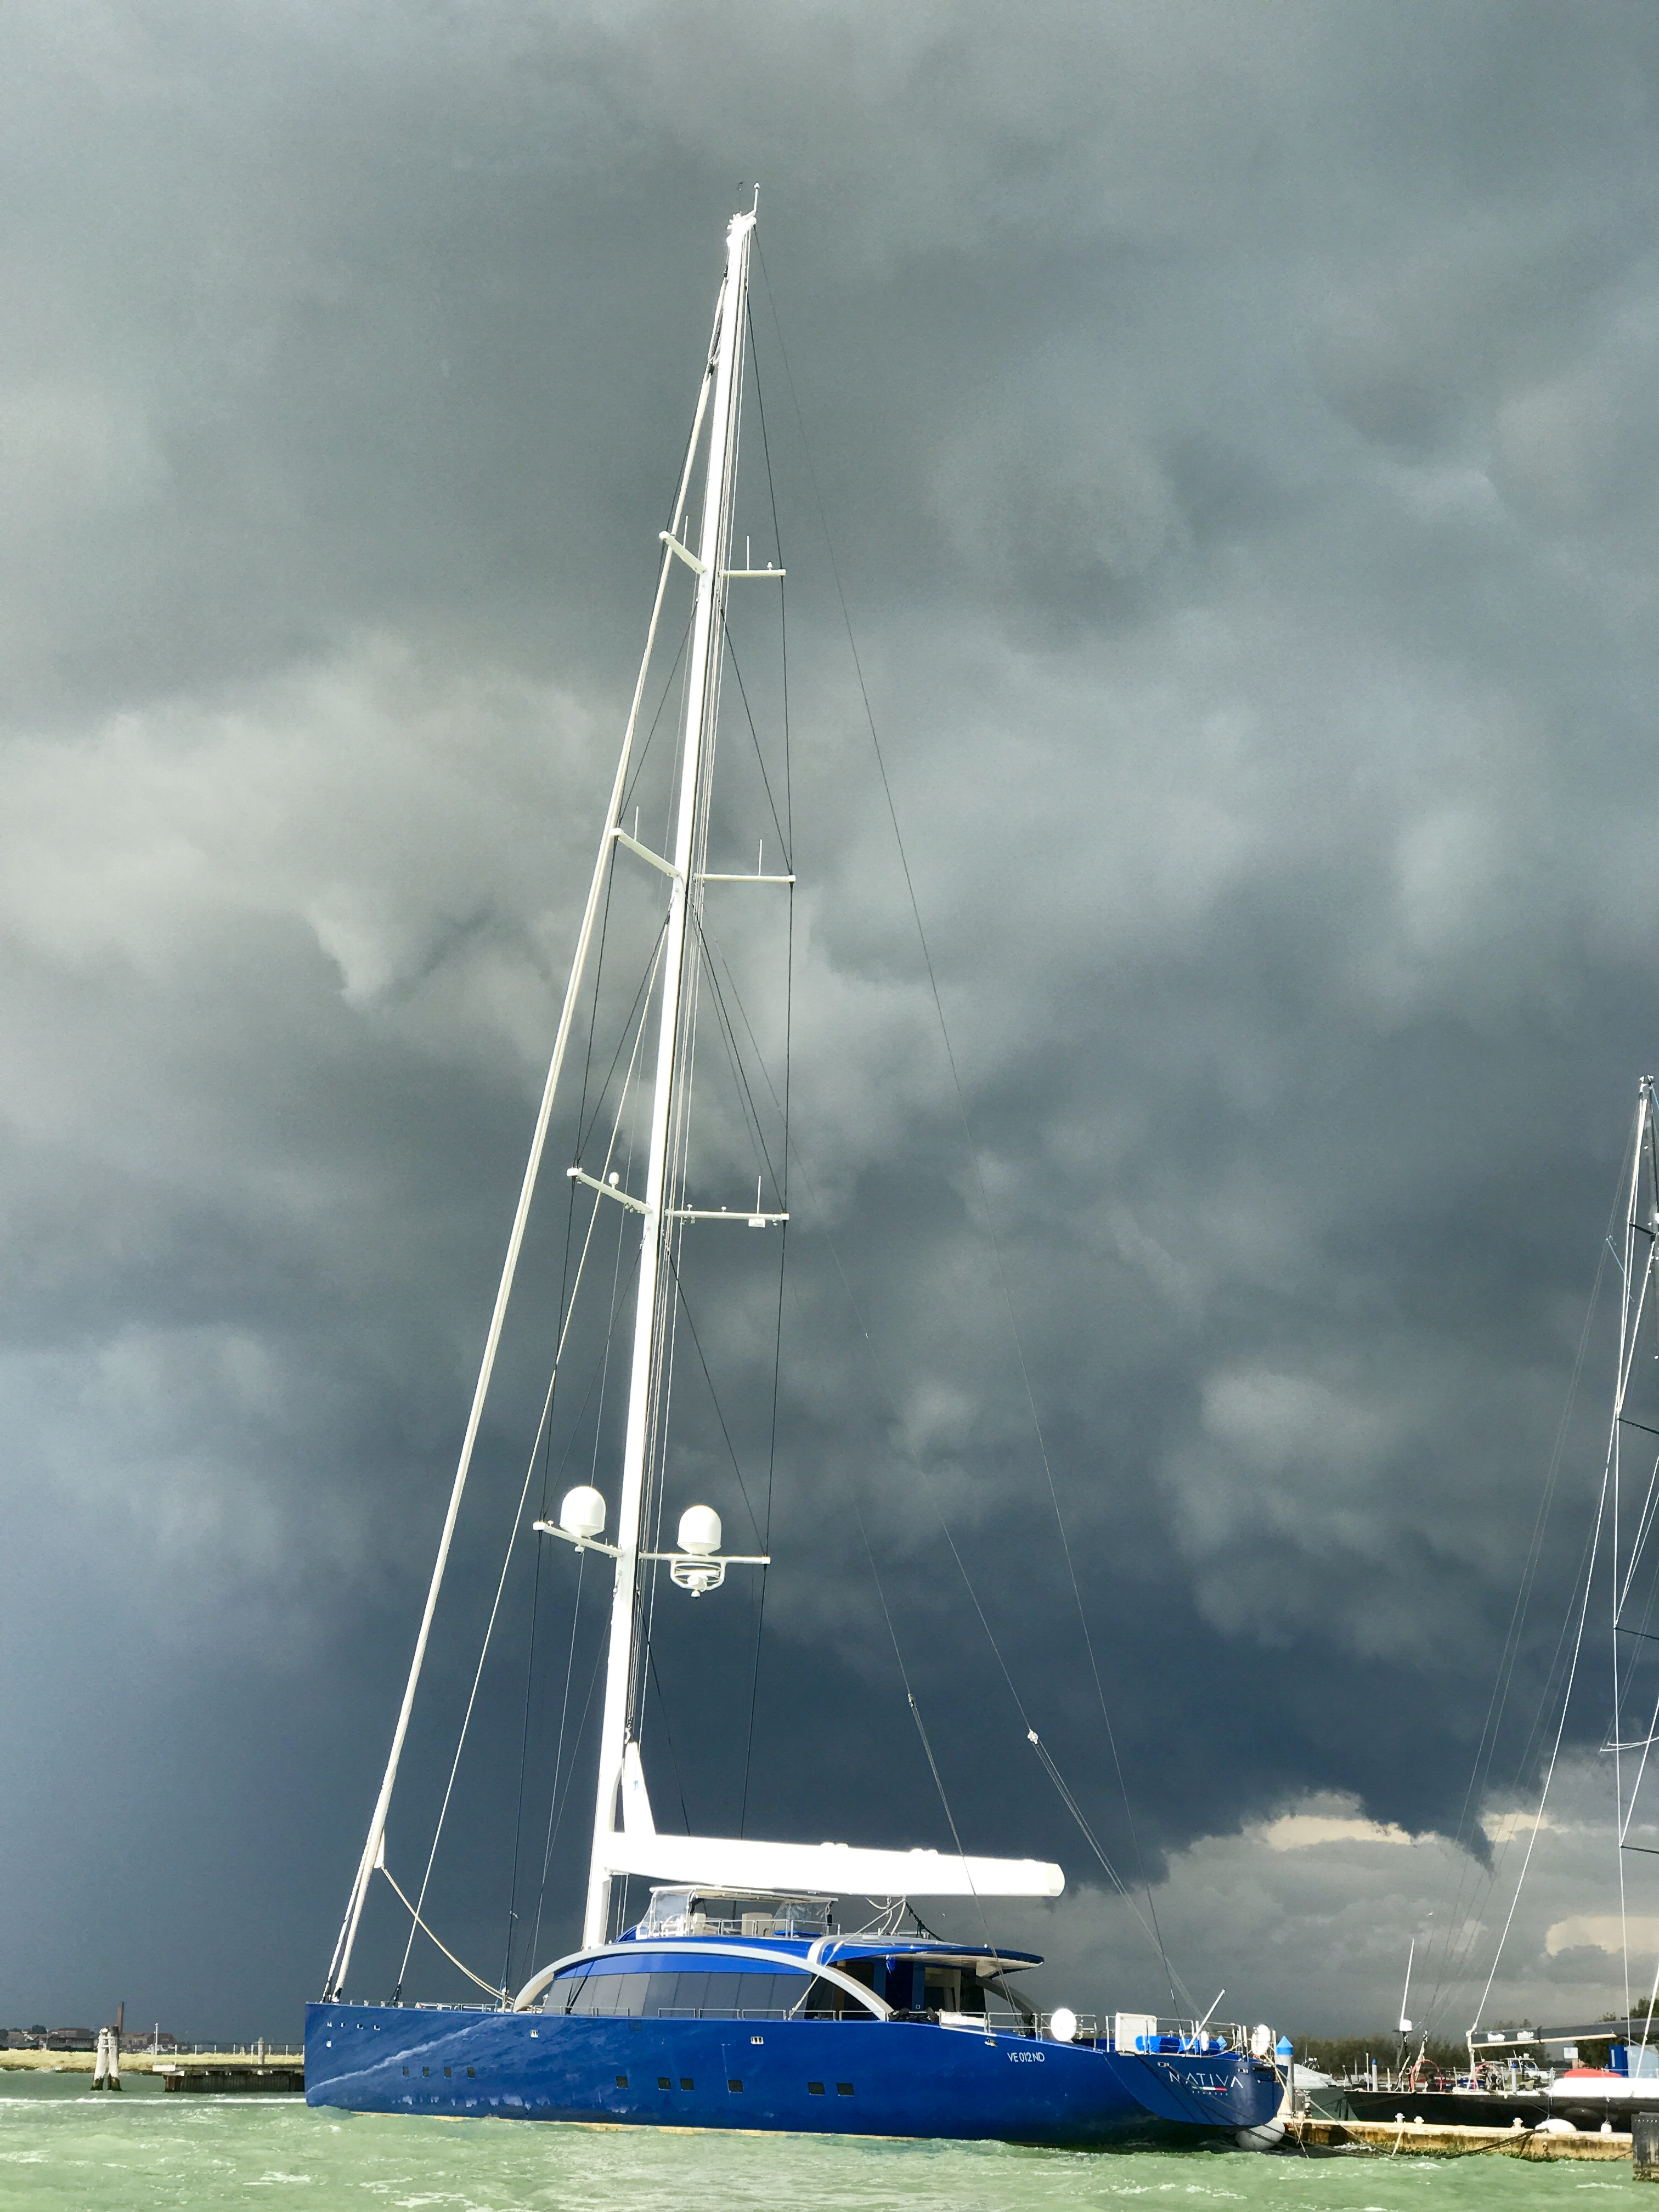 A Storm is Brewing in Italy